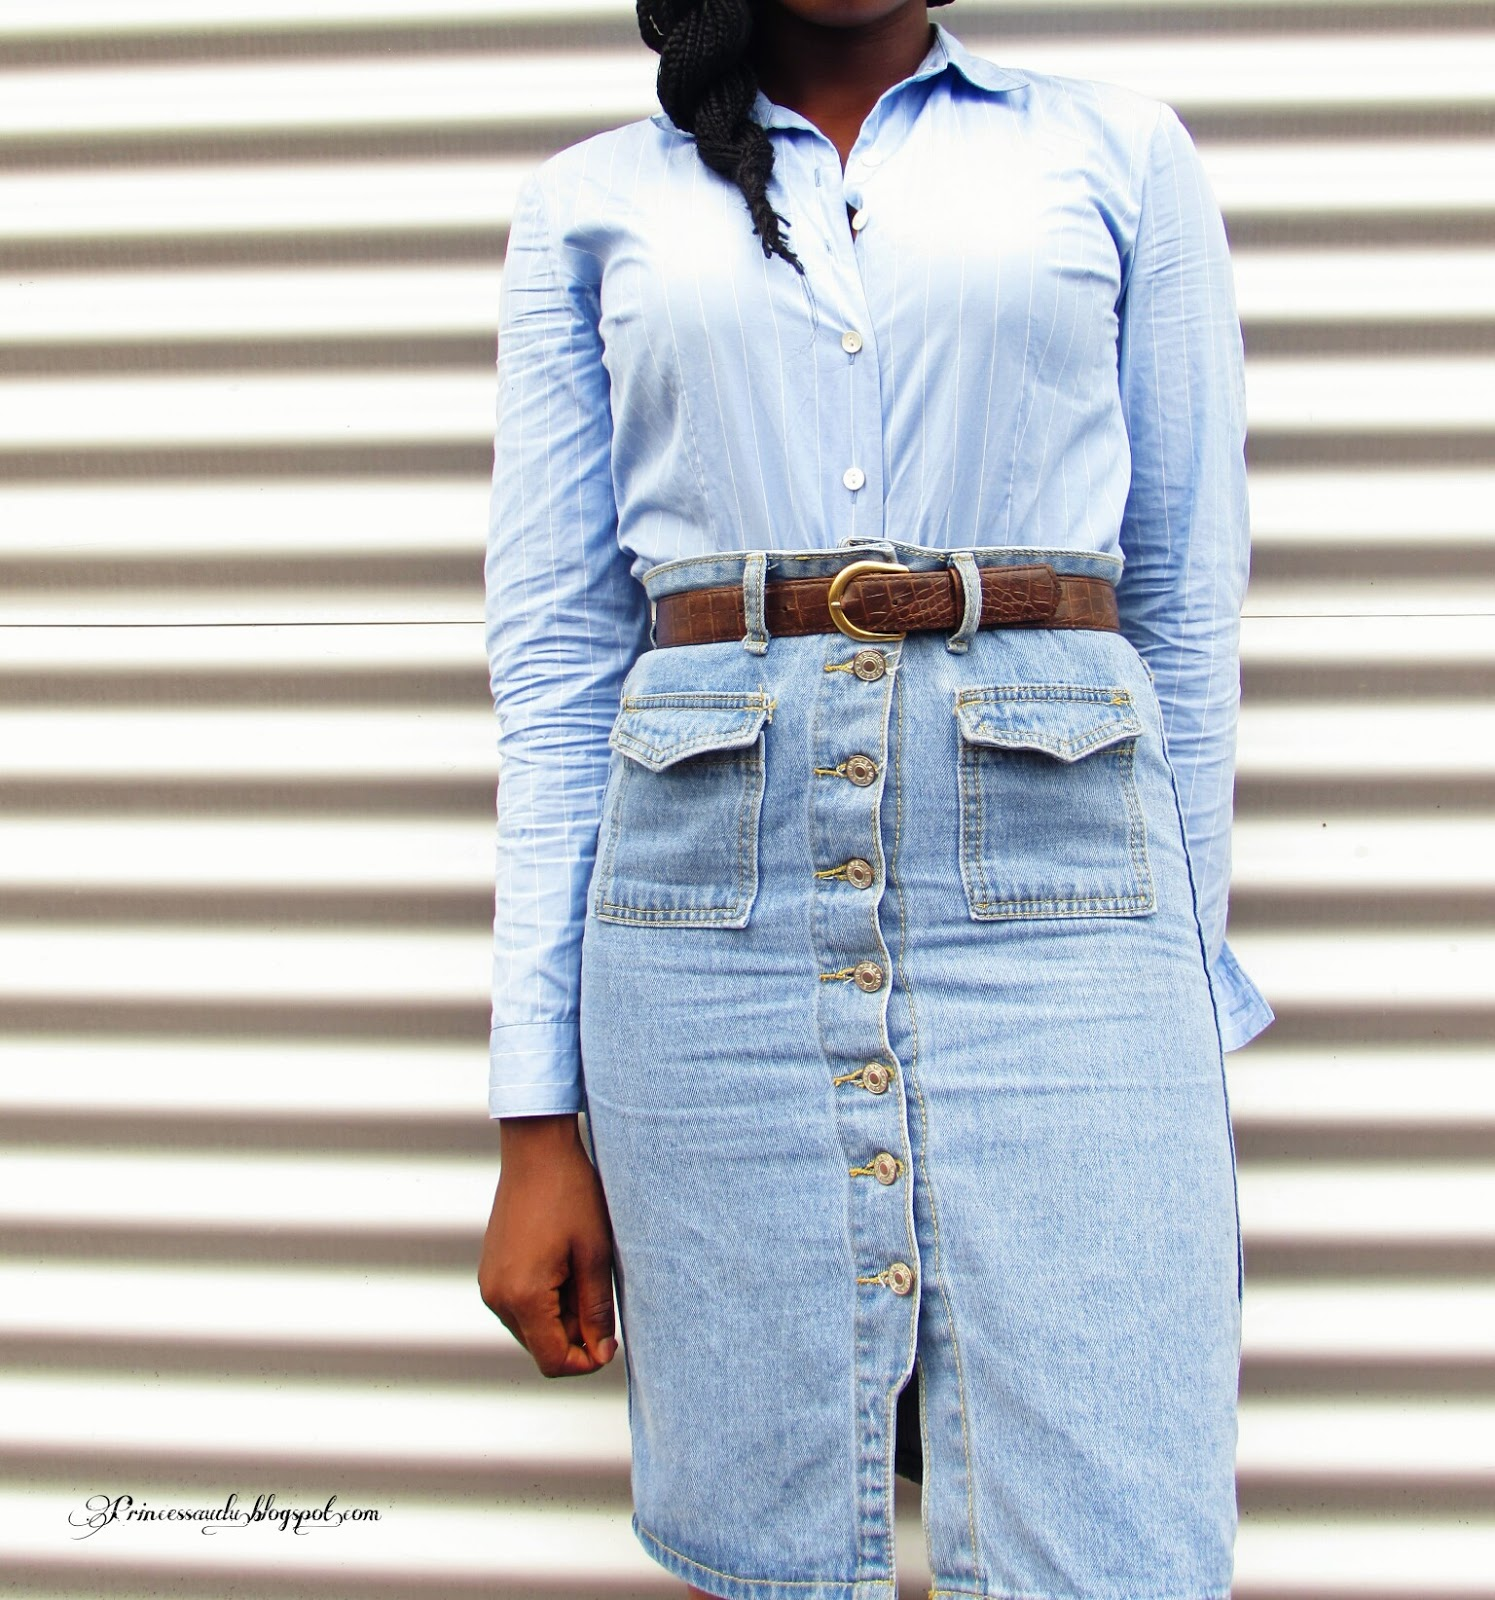 Denim skirt, pinstripes, sheinside, vintage, shades of blue, pockets